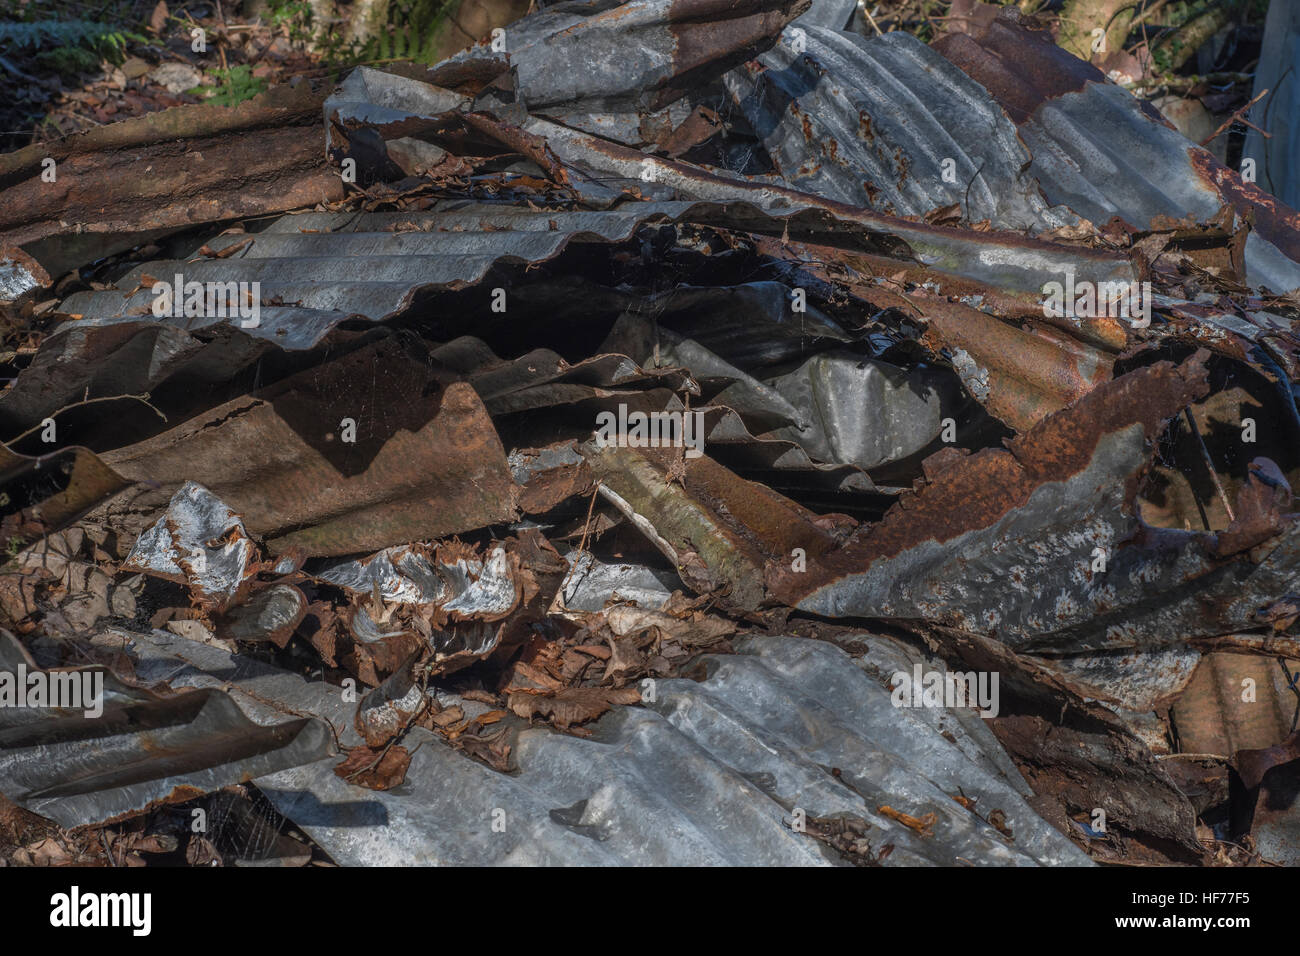 Mass of mangled, rusted, corrugated iron. Metaphor for recycling, urban / industrial decay, or storm damage. - Stock Image